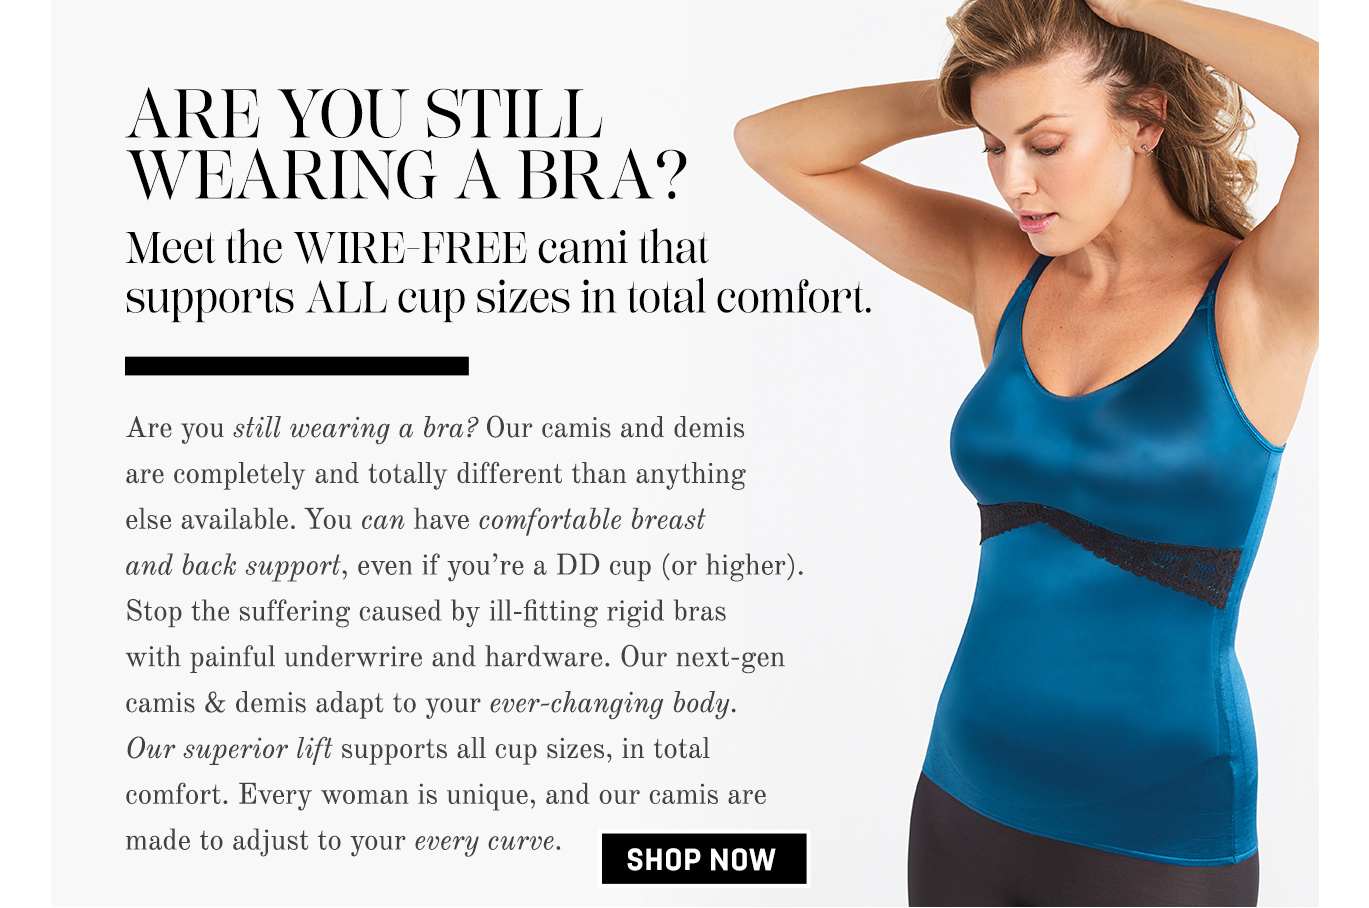 Meet the wire-free cami that supports all cup sizes in total comfort